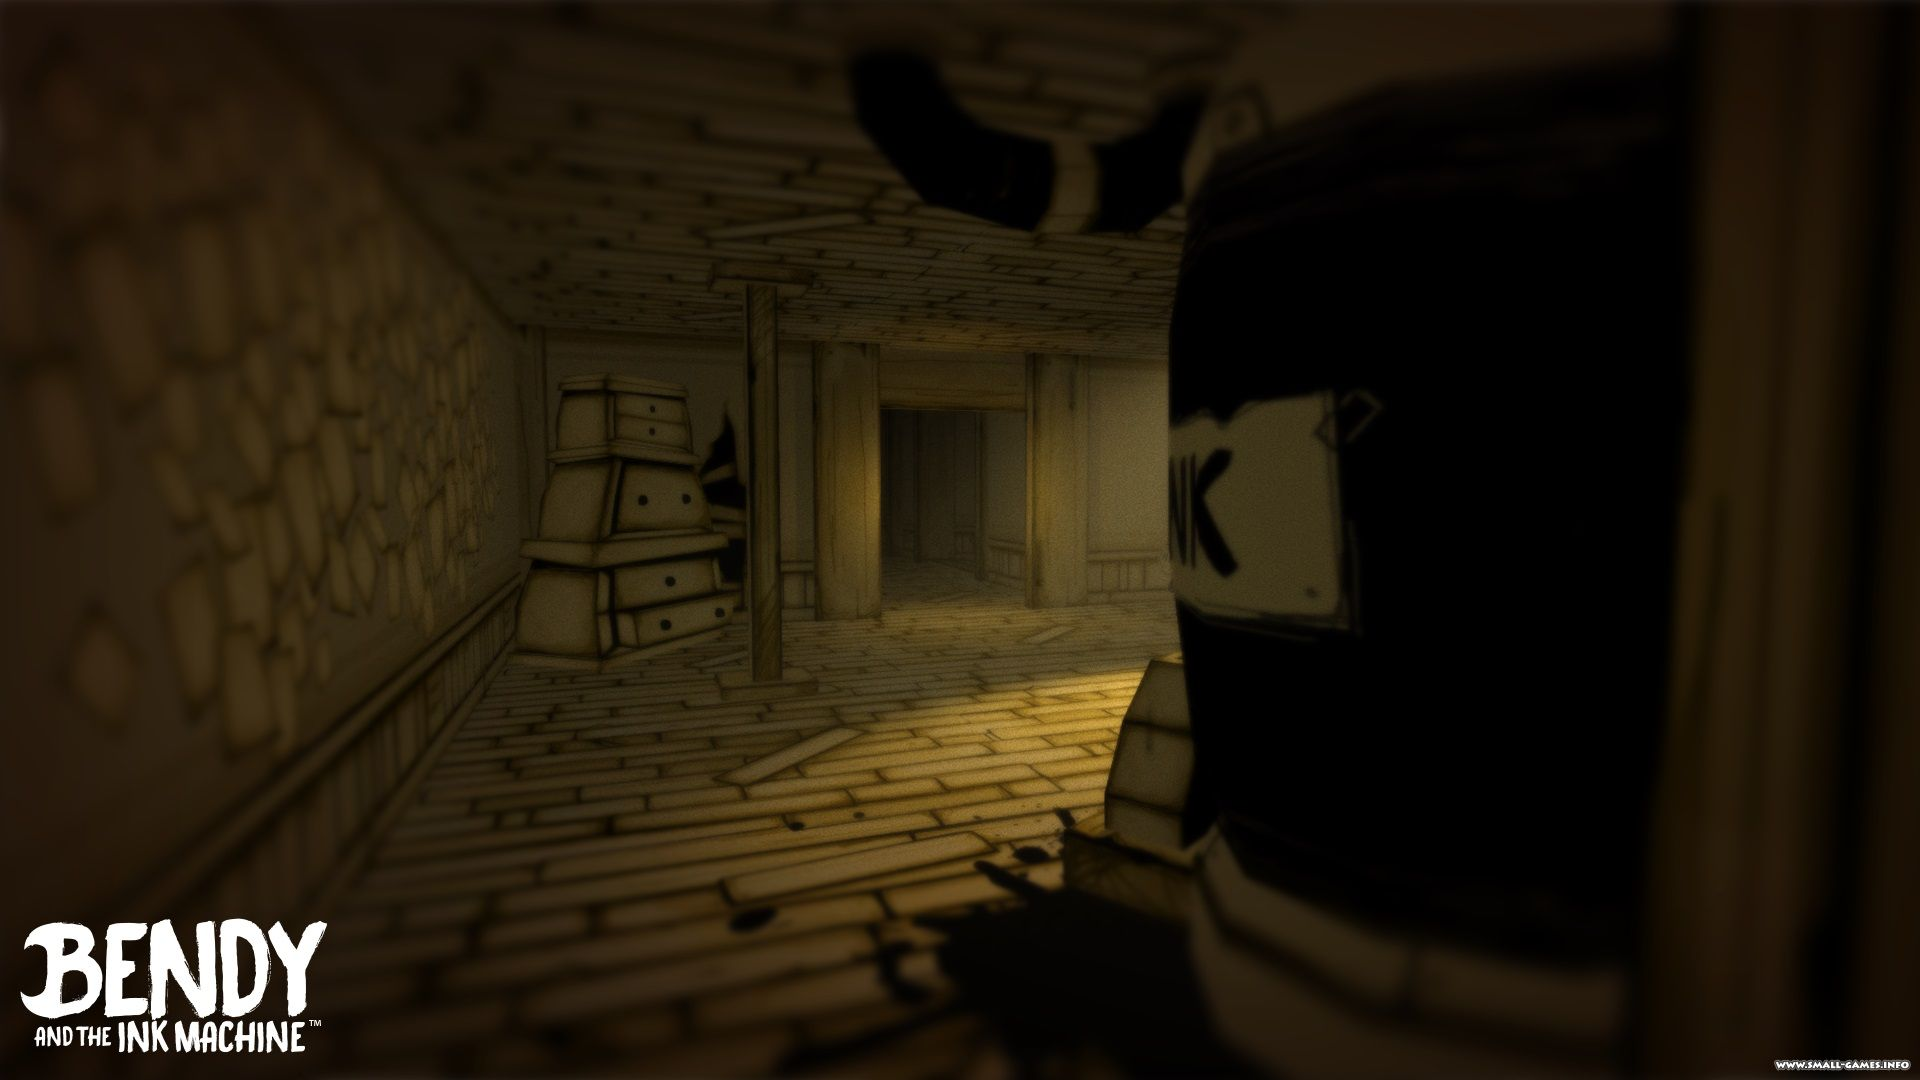 bendy and the ink machine plot